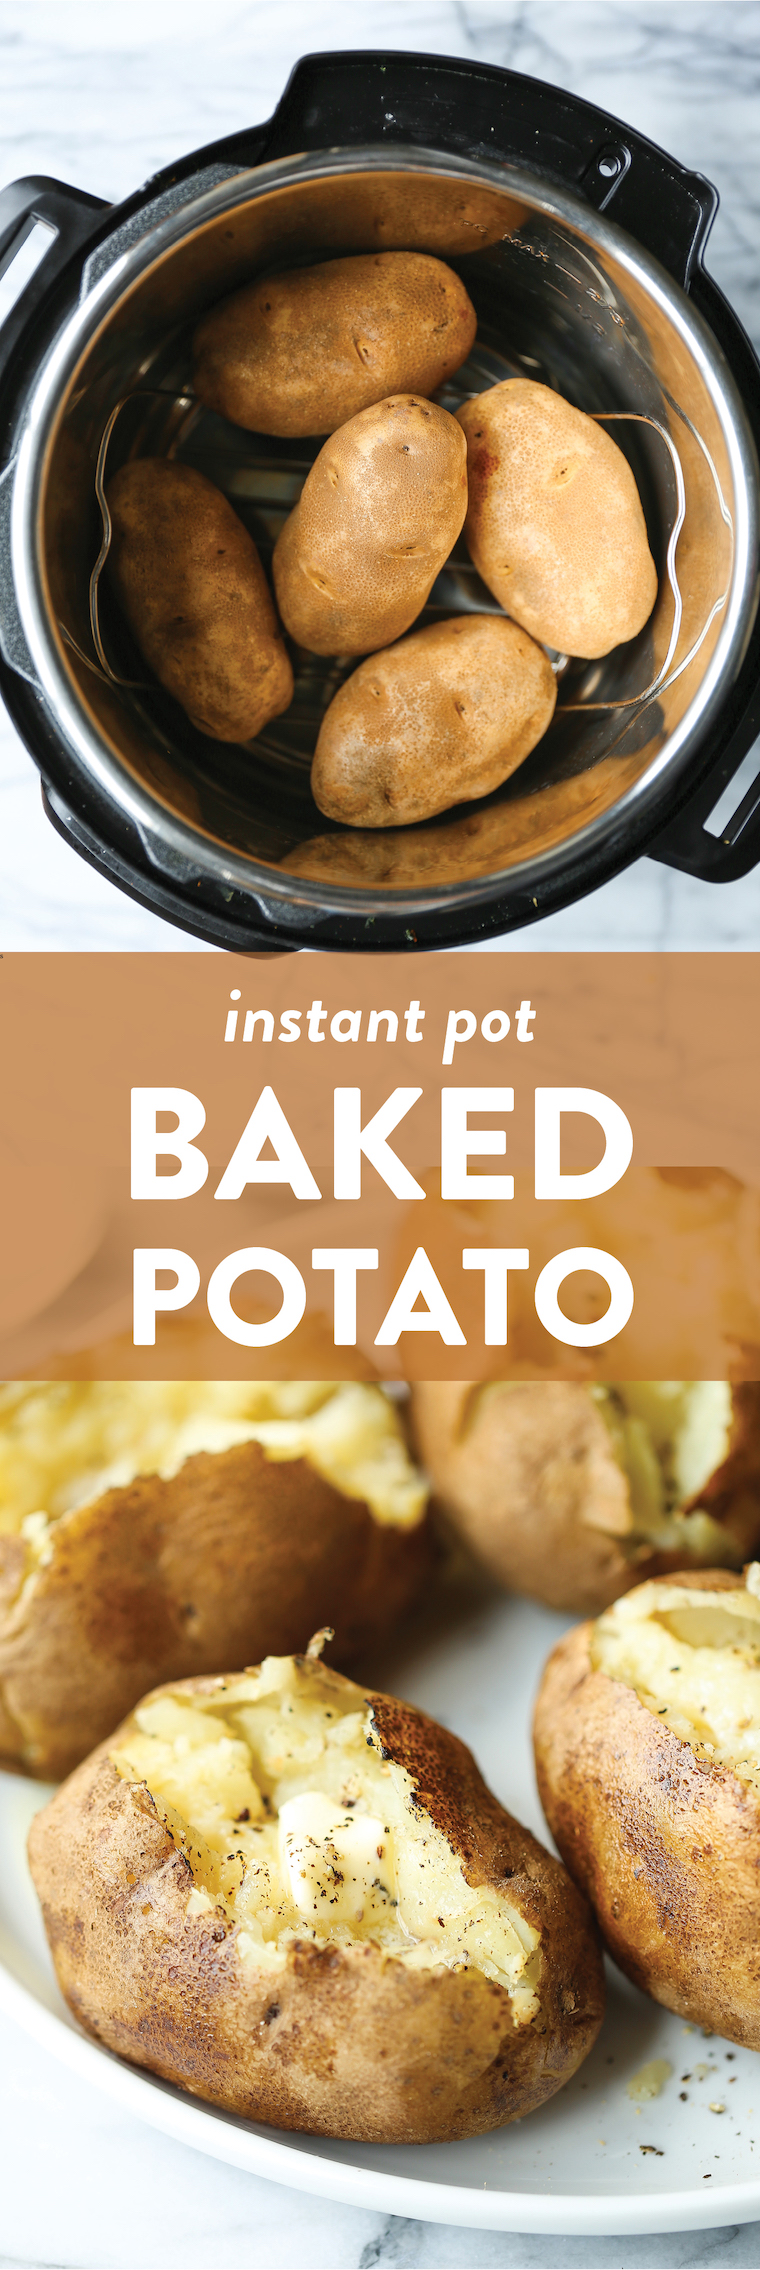 Instant Pot Baked Potato - The most foolproof way to make baked potatoes! Fluffy, fork-tender insides with super golden, crisp skin in just half the time!